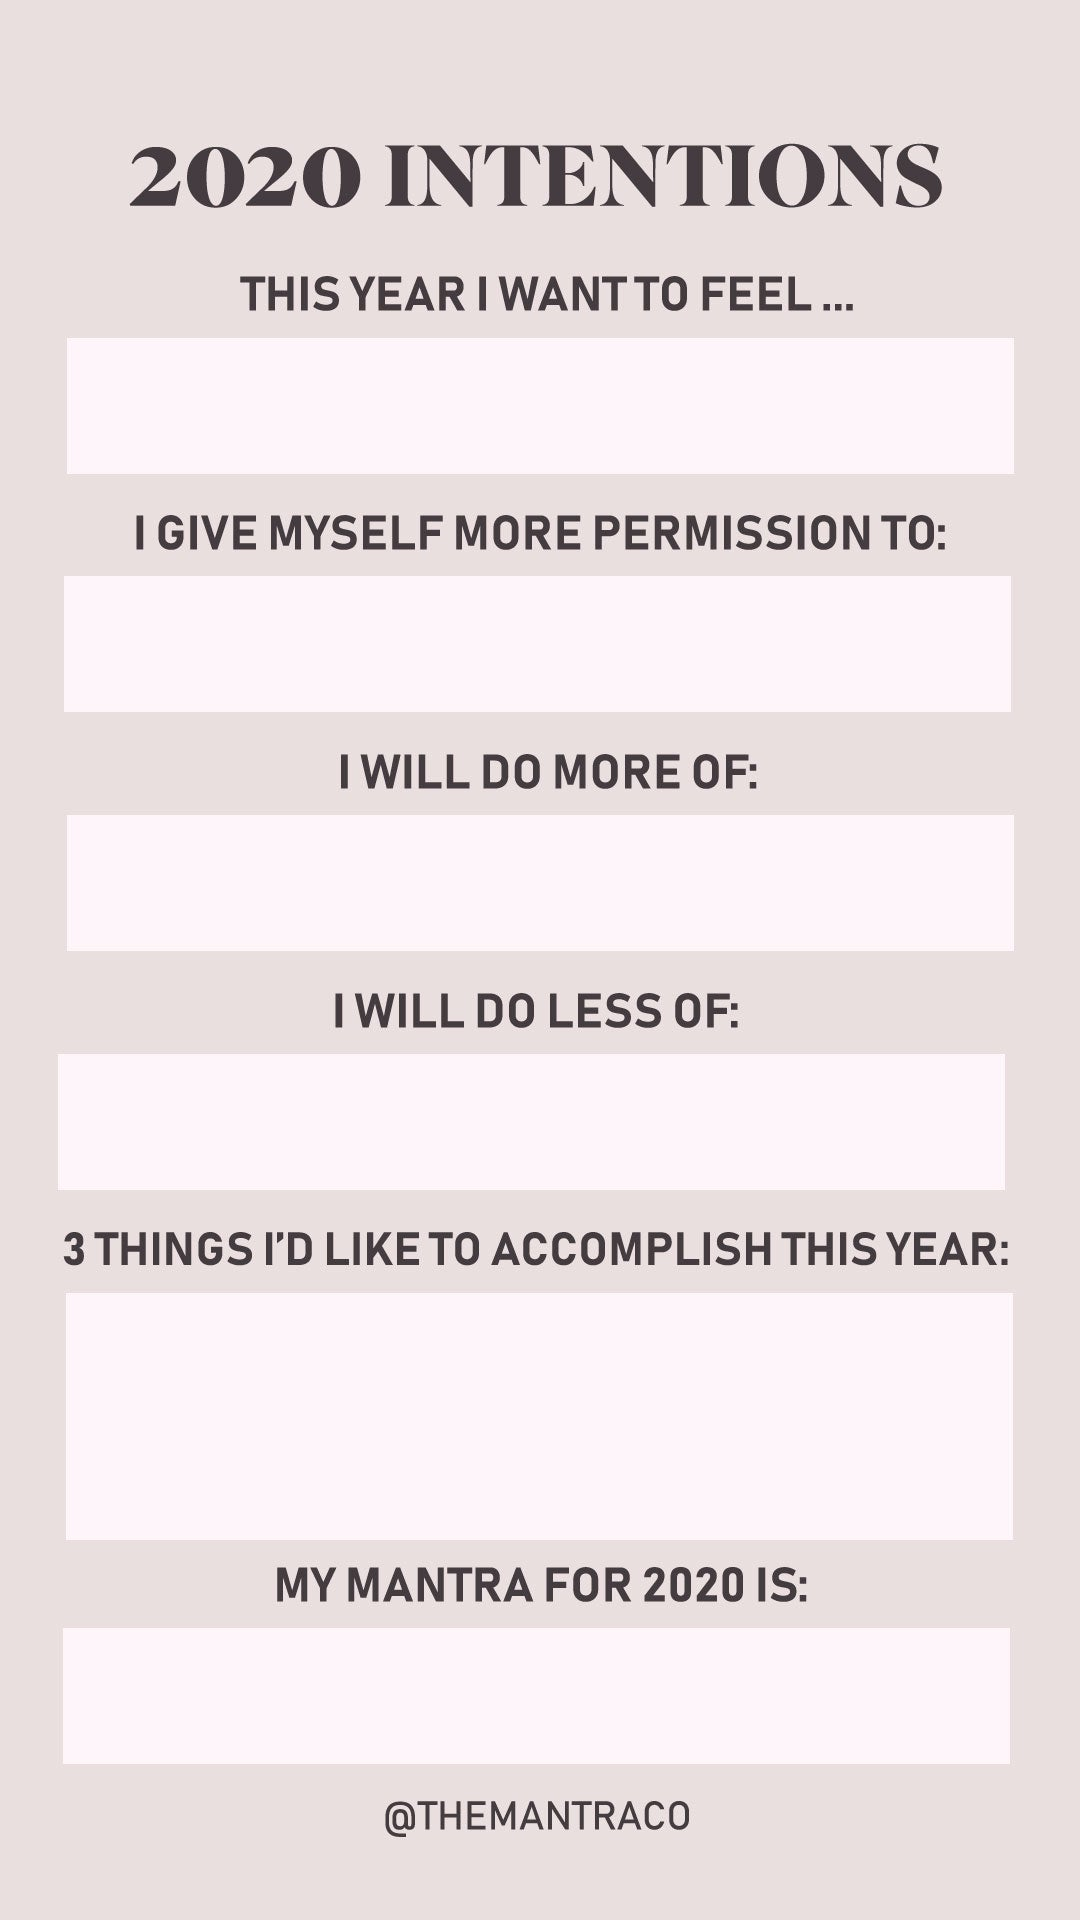 2020 intentions ig template